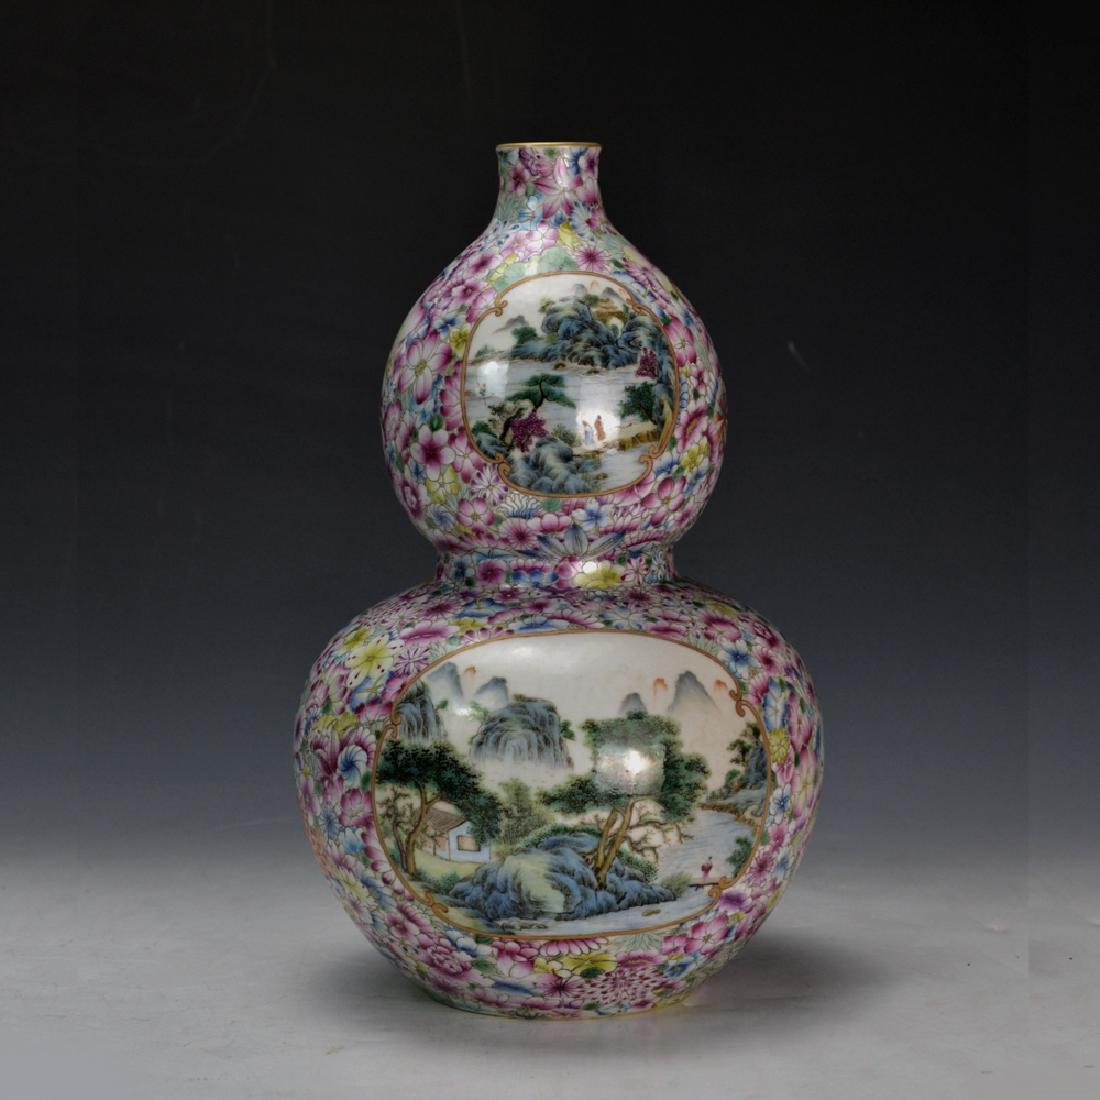 19C TH CHINESE FAMILLE ROSE DOUBLE GOURD VASE